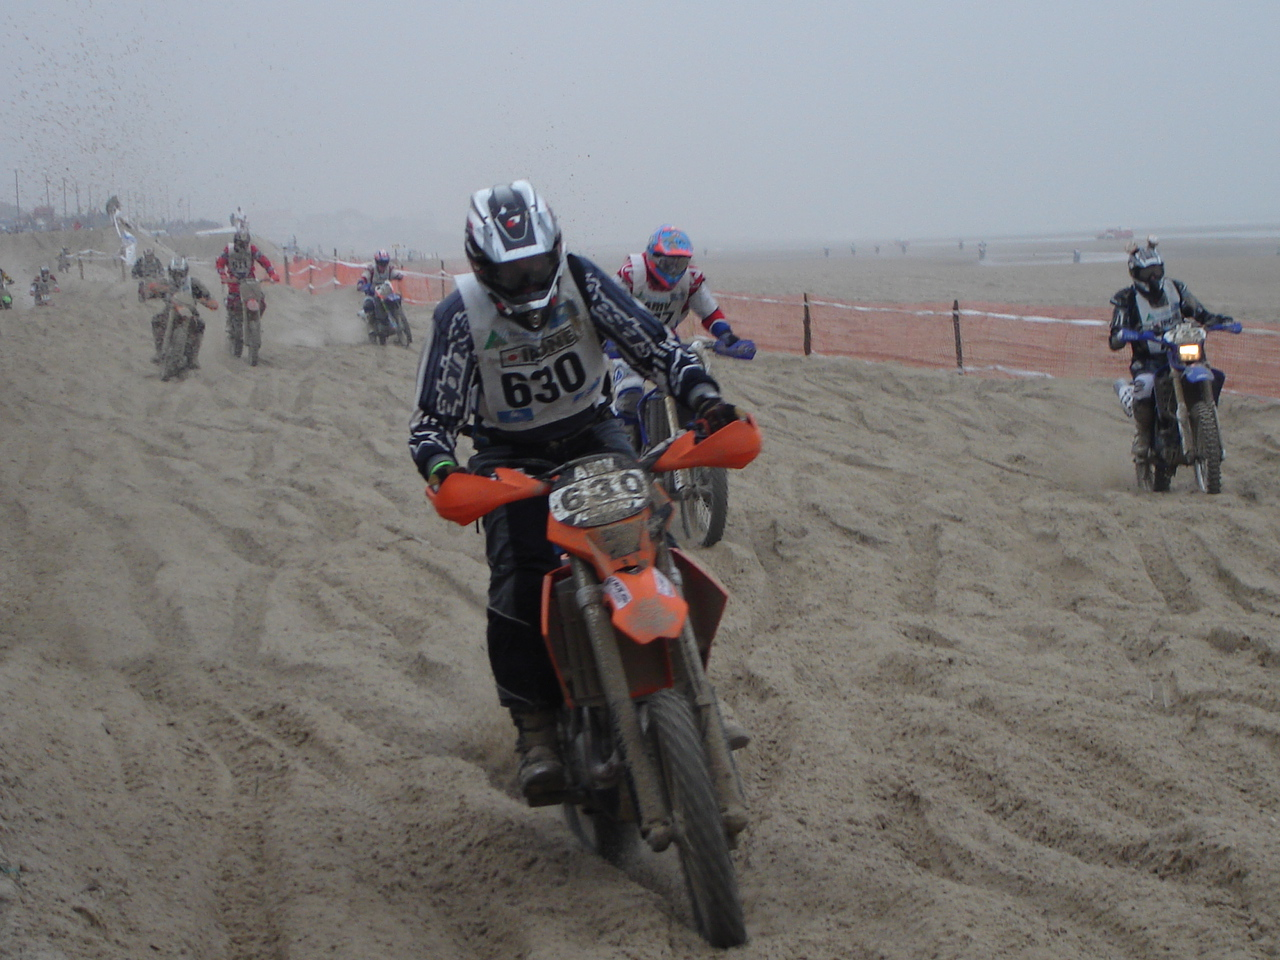 The Enduropale in Le Touquet